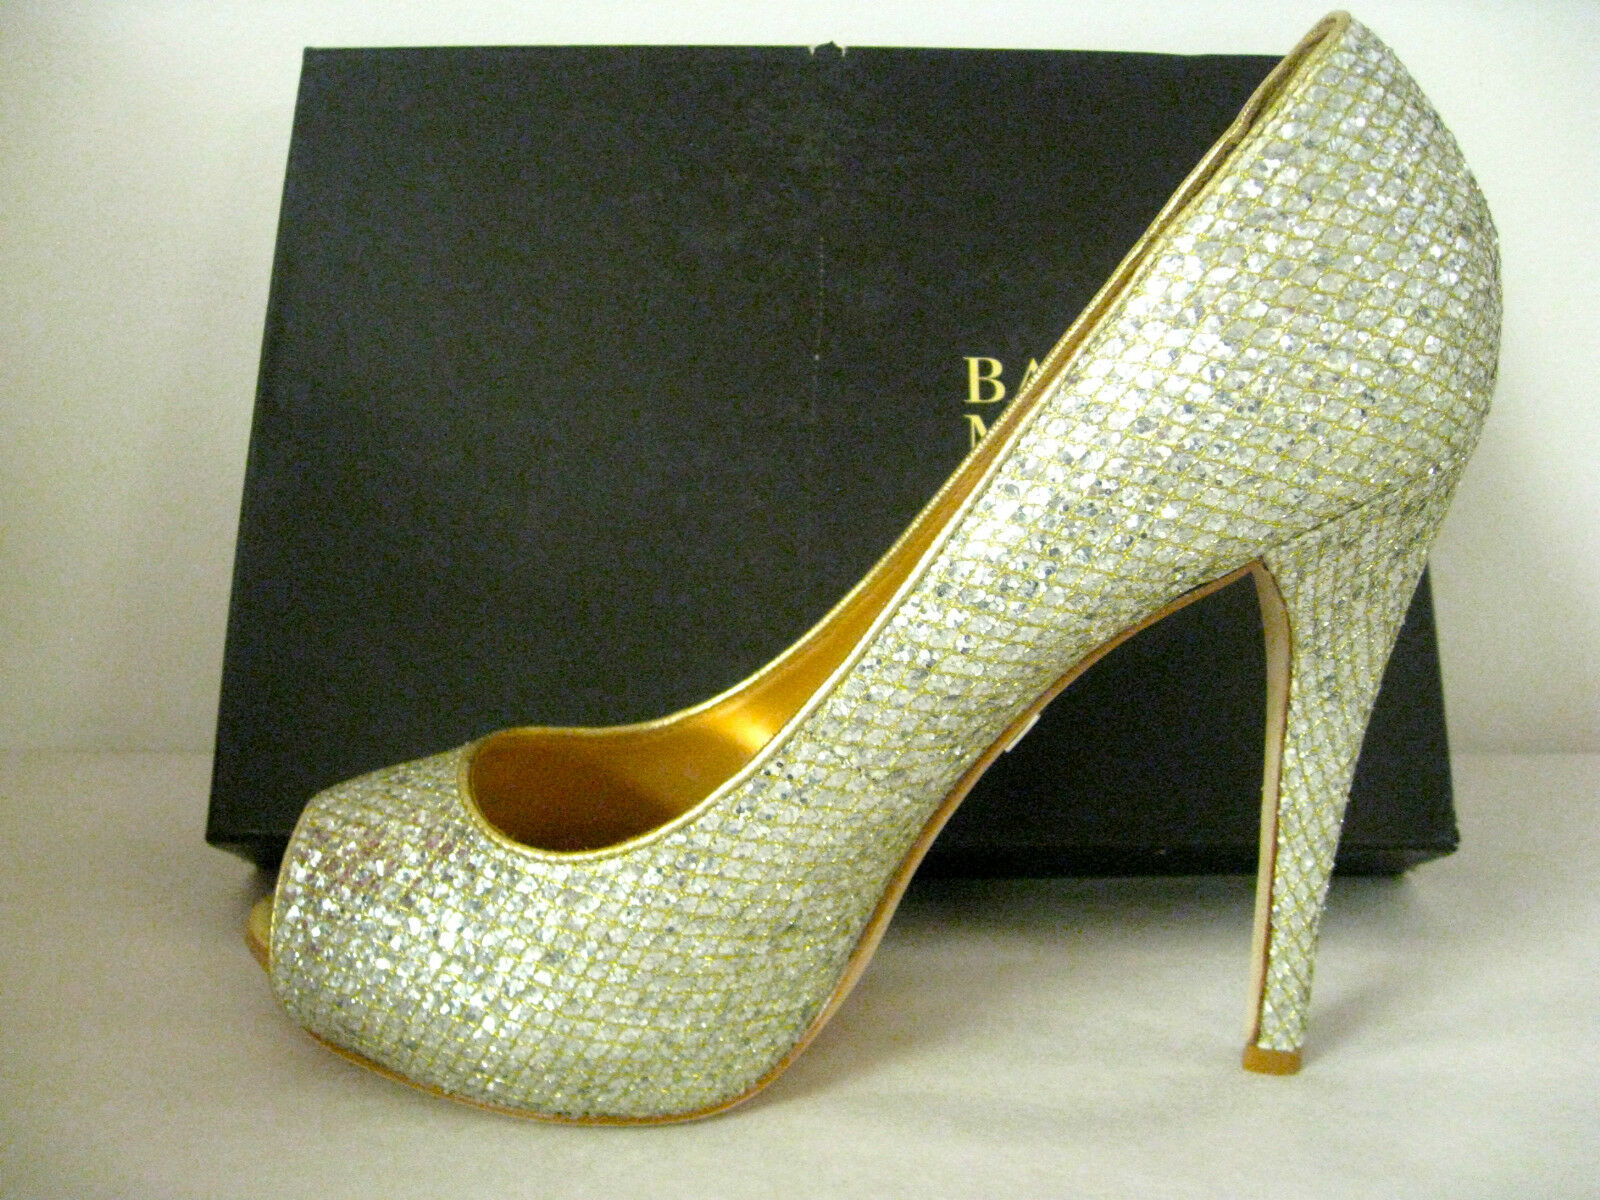 BADGLEY MISCHKA - HUMBIE II GOLD GLITTER PEEP-TOE PUMP SZ 10, RETAIL 200